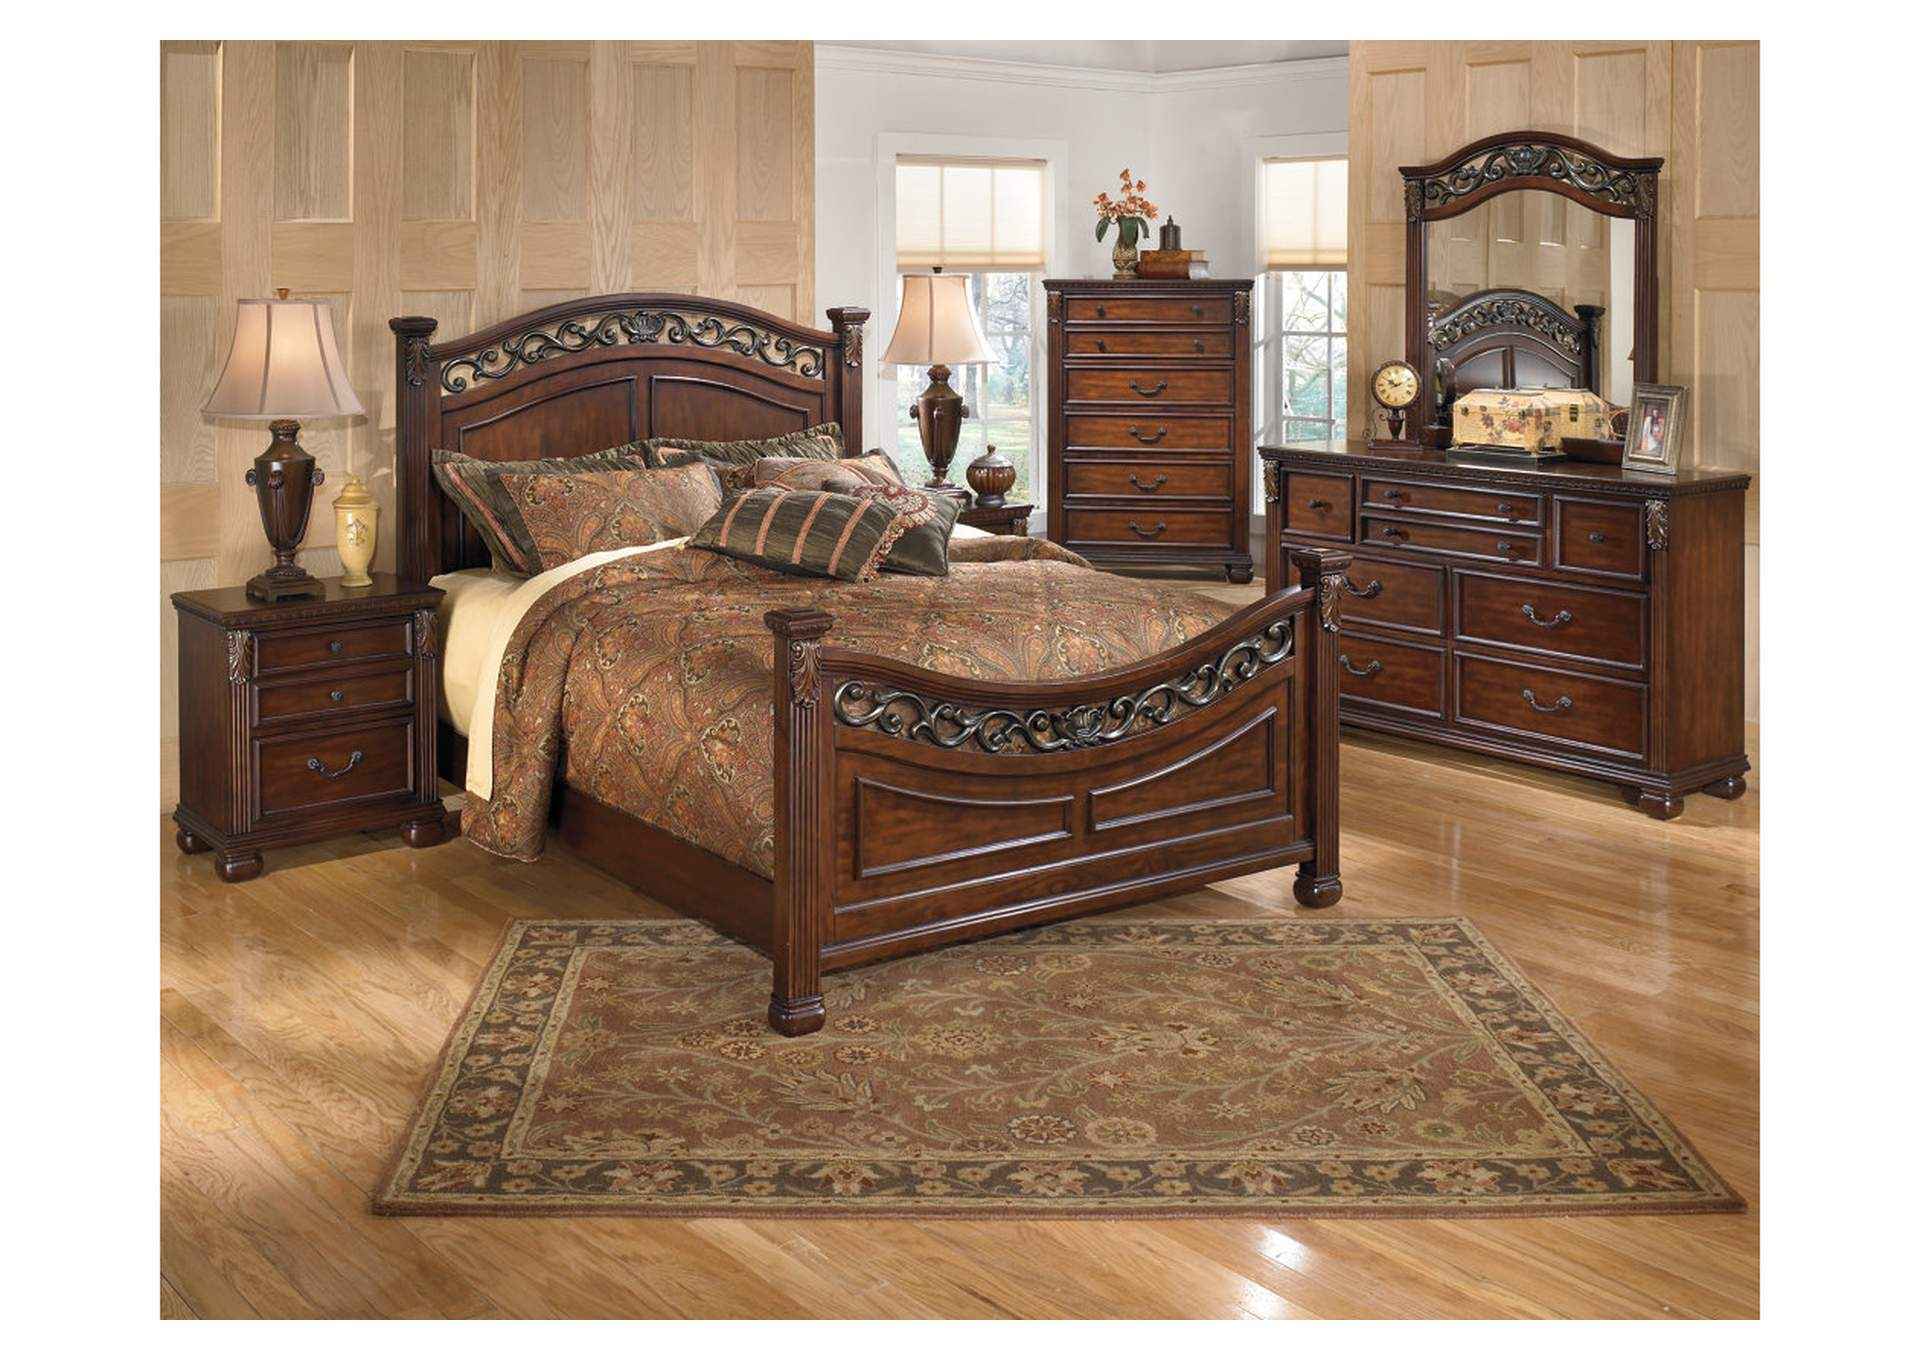 Leahlyn Queen Panel Bed w/Dresser, Mirror & Drawer Chest,Signature Design By Ashley